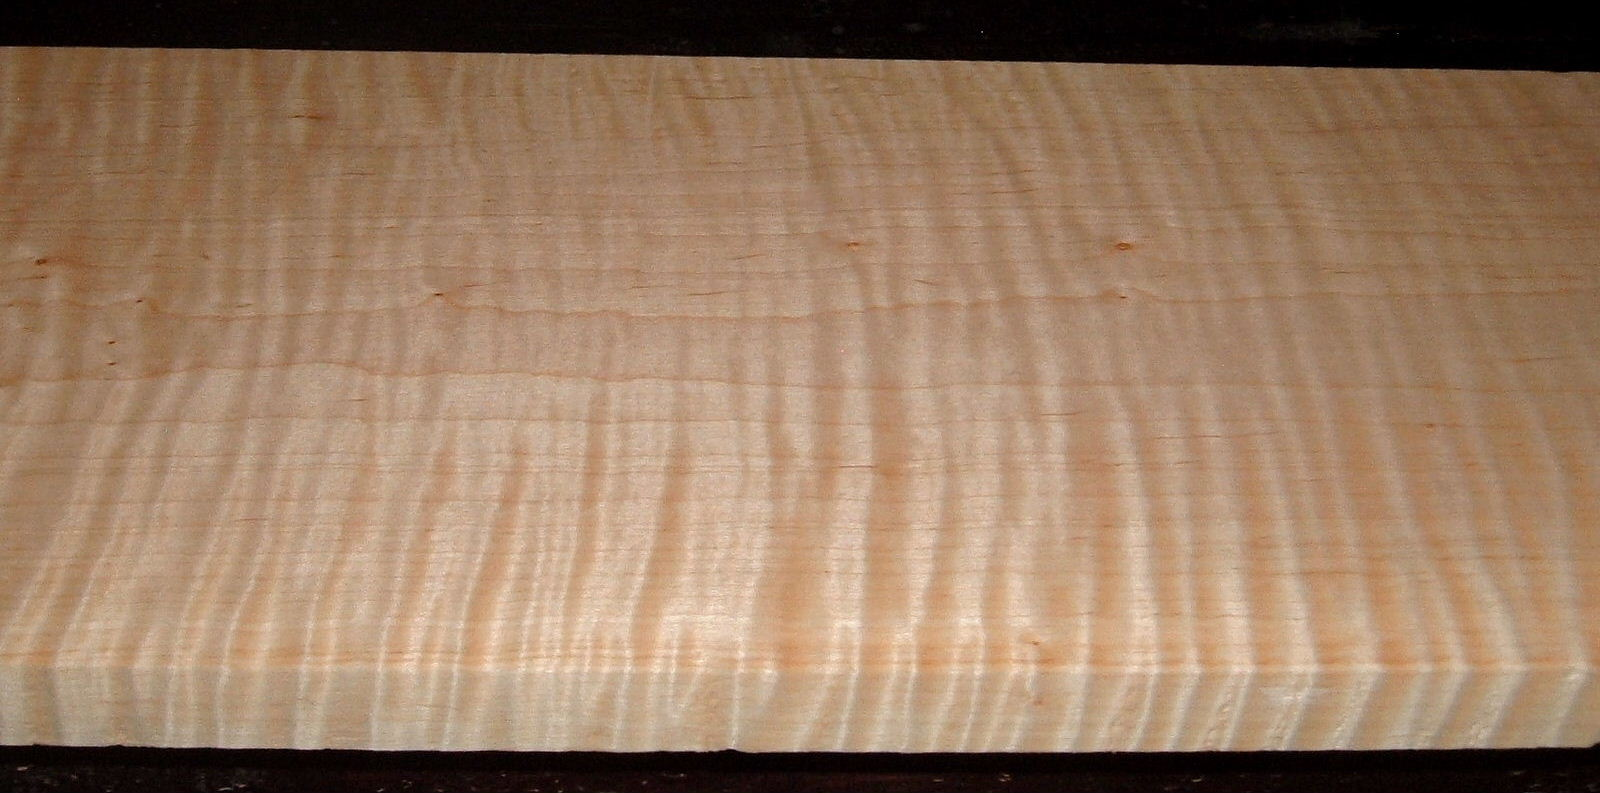 M2104-295, 3/4x7-3/8x47, Curly Tiger Maple